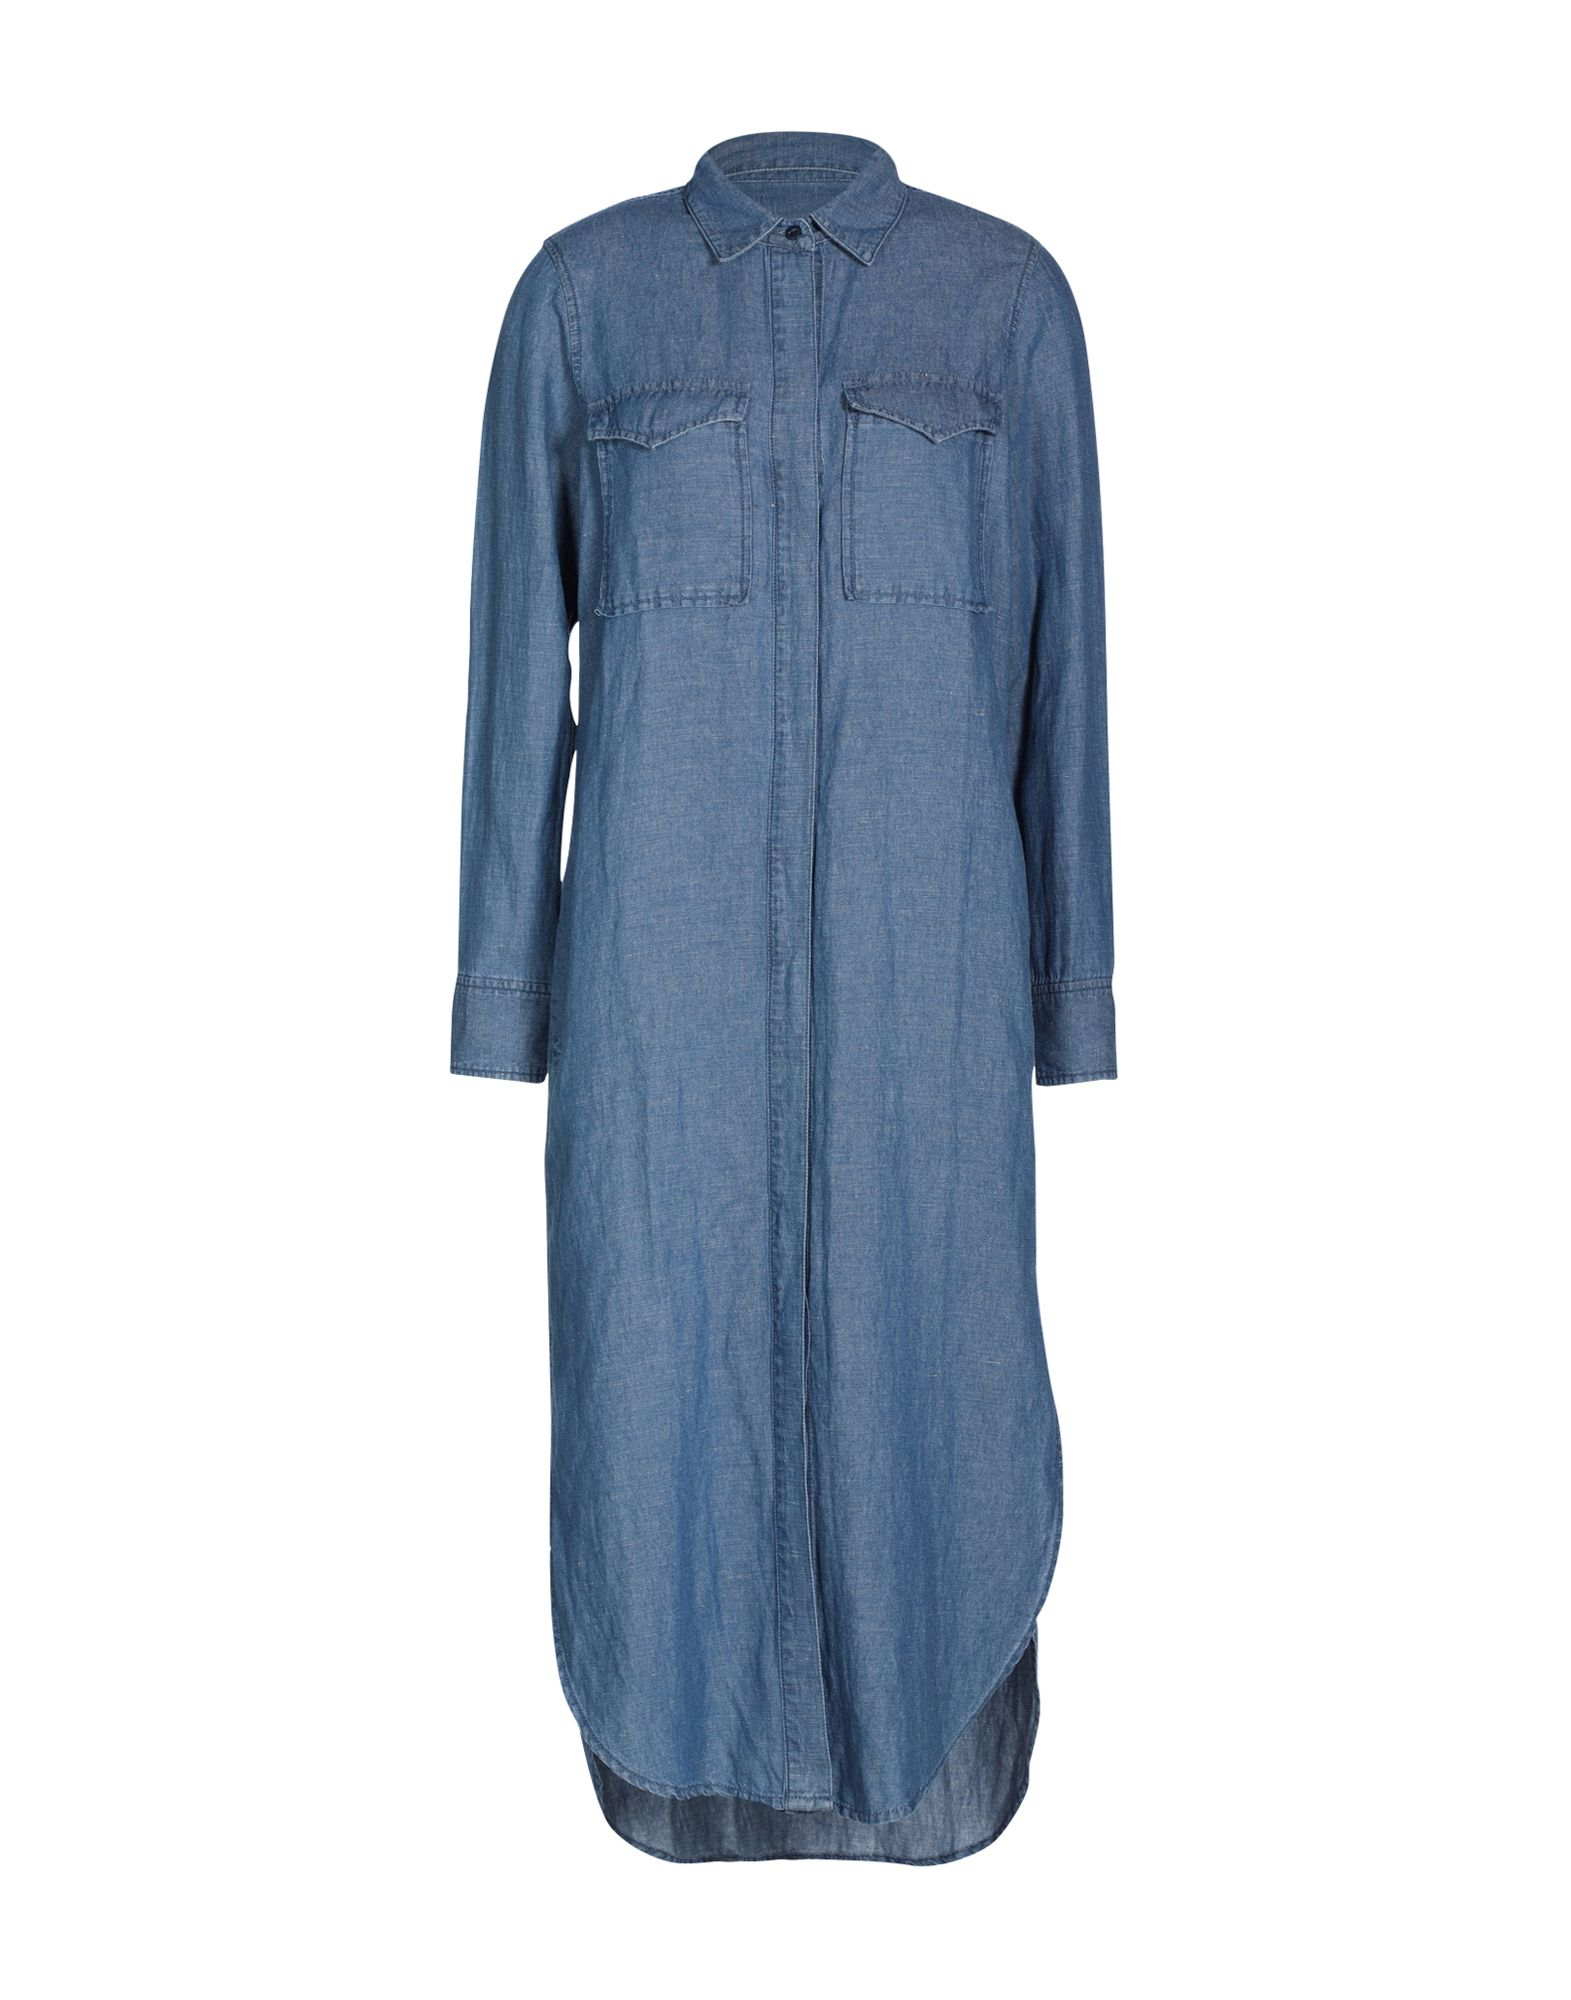 MADEWELL Knee-length dresses. denim, classic neckline, unlined, basic solid color, long sleeves, dress. 60% Cotton, 40% Linen